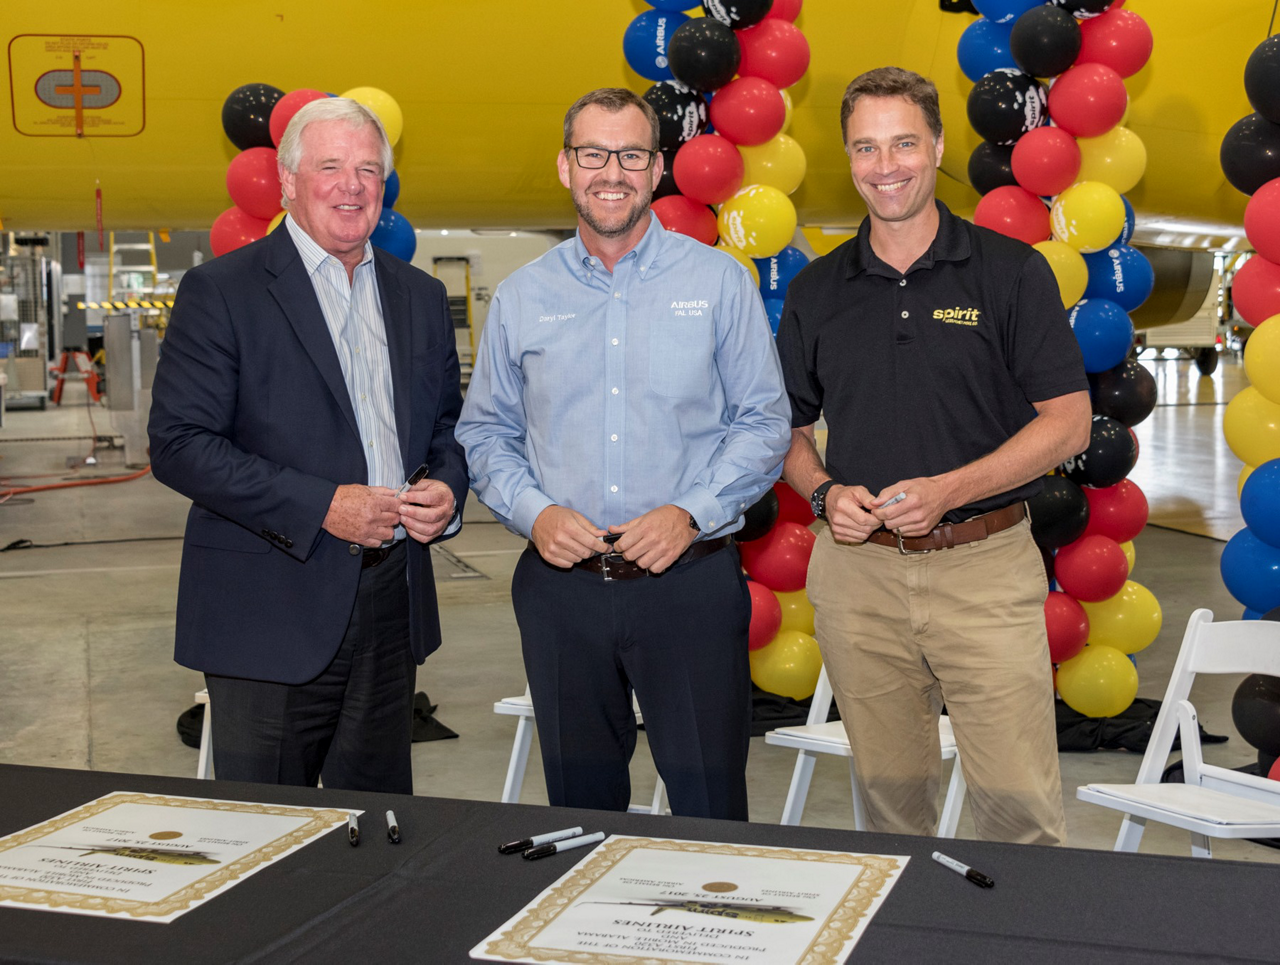 From left to right: Bob Lekites, Executive Vice President-Customers, Airbus Americas; Daryl Taylor, Vice President & General Manager Airbus U.S. Manufacturing Facility; Ted Christie, Executive Vice President & Chief Financial Officer, Spirit Airlines, at the delivery ceremony